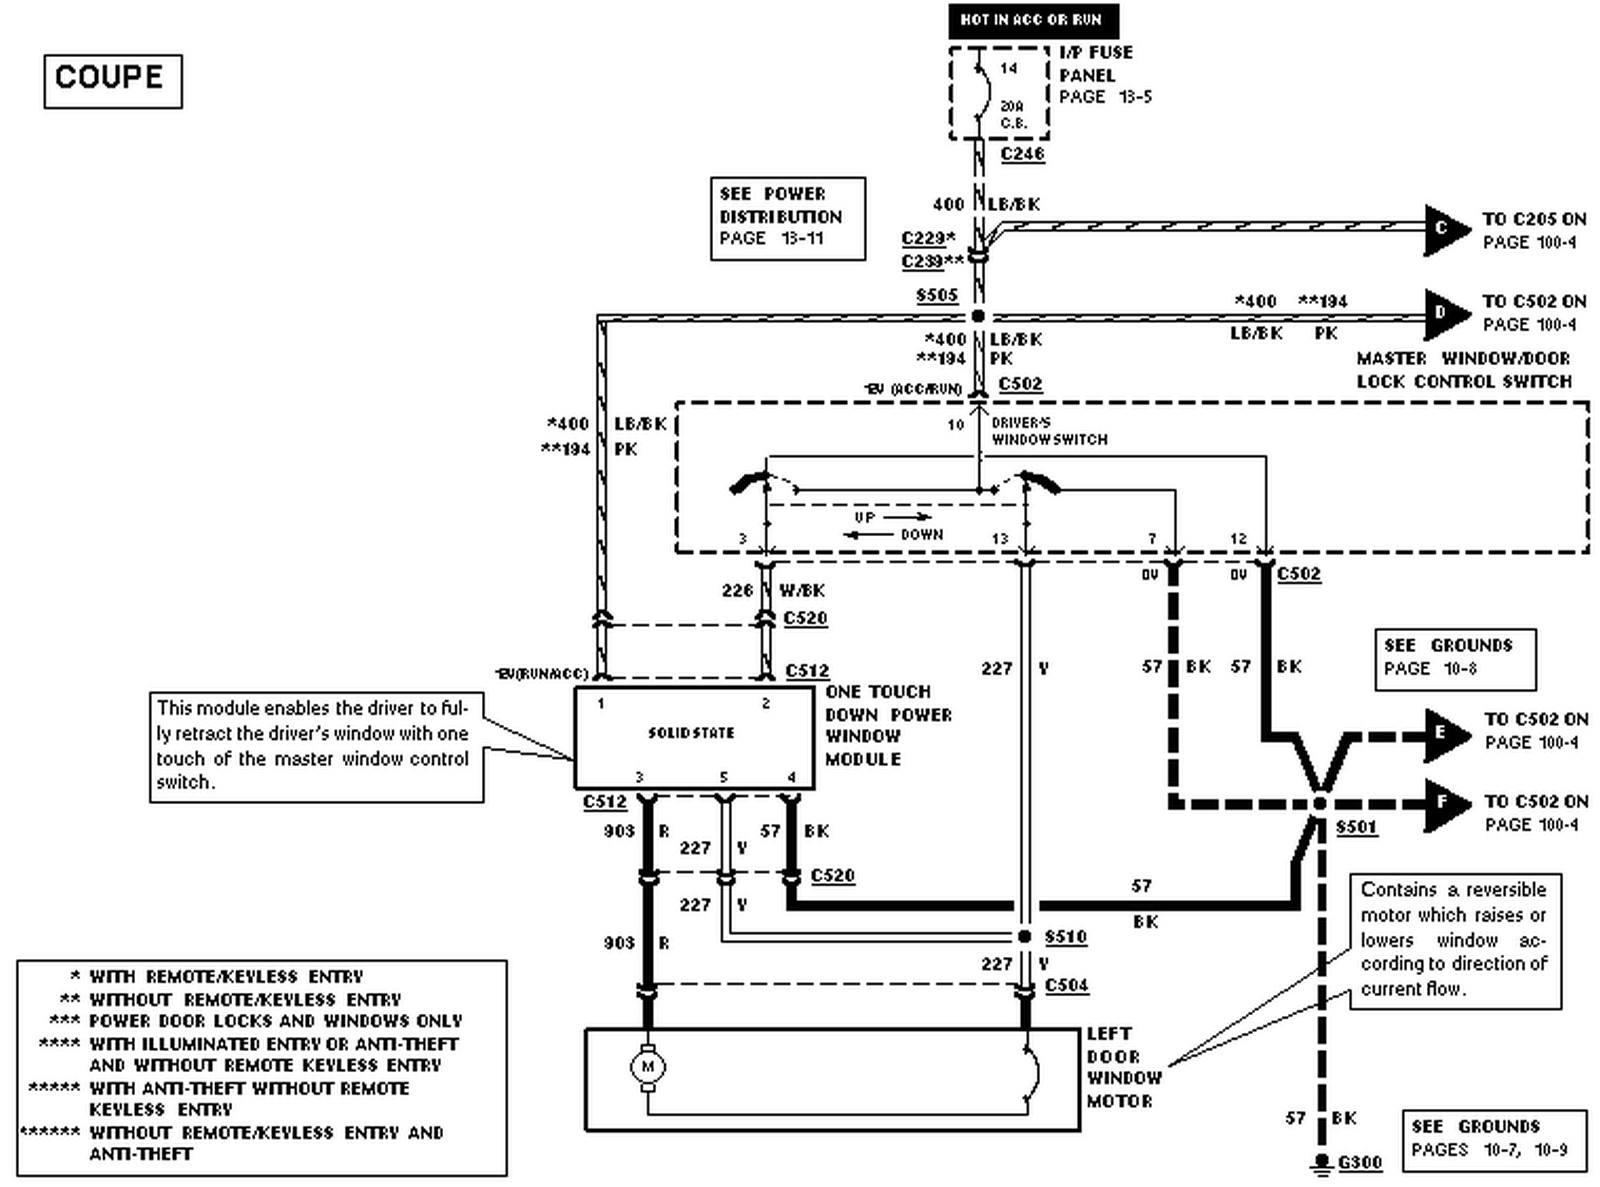 [DIAGRAM_5FD]  XS_2211] Control Wiring Diagram Besides Ford Mustang Radio Wiring Diagram  Download Diagram | Ford Mustang Power Window Wiring Schematic |  | Hison Opein Mohammedshrine Librar Wiring 101